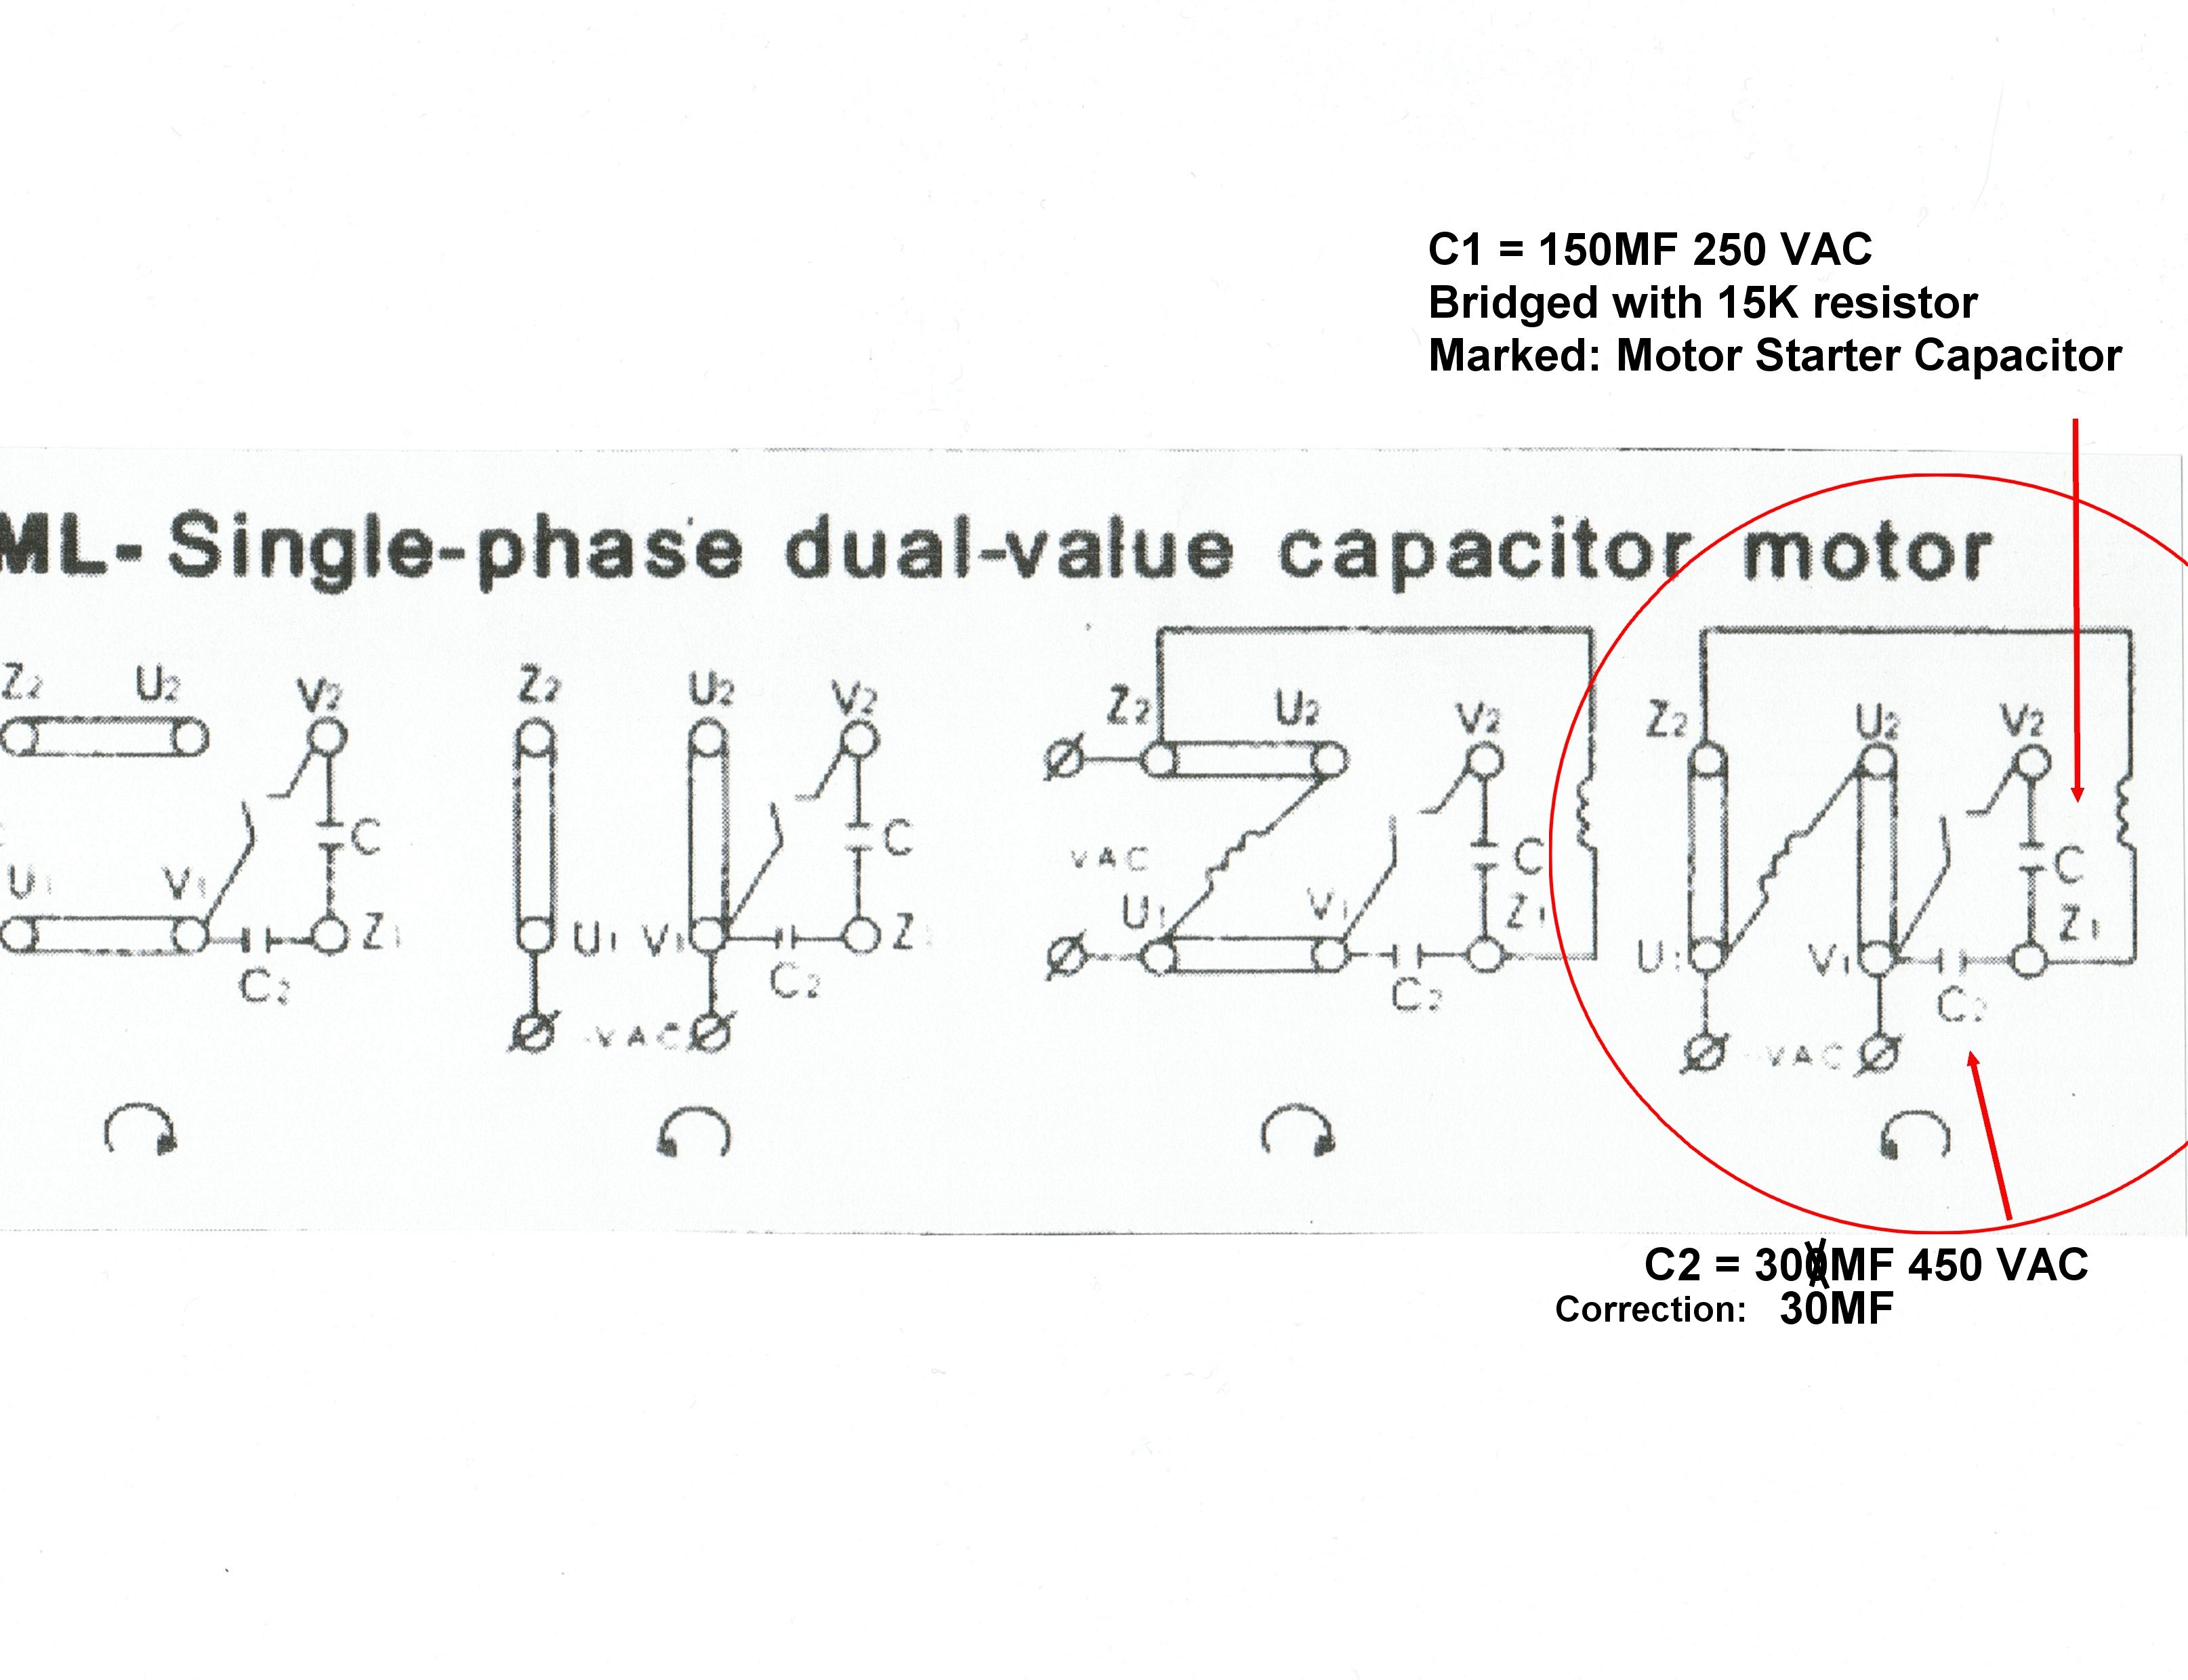 capacitor motor wiring diagram get free image about wiring diagram